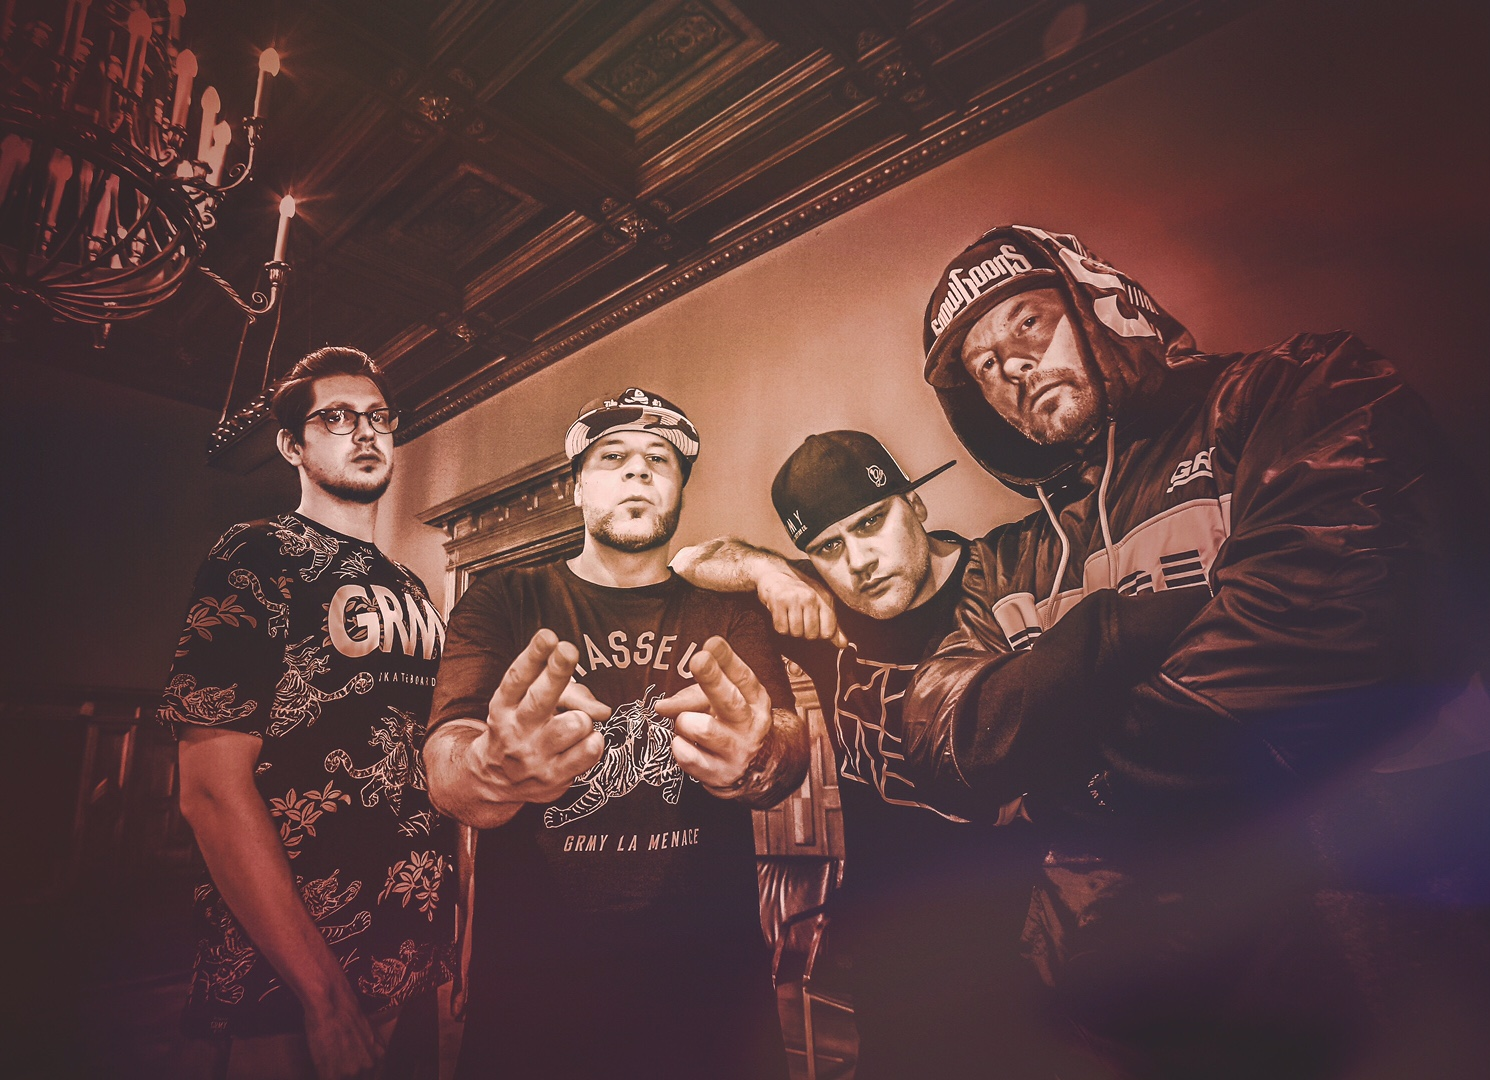 FEATURE: The Snowgoons Bring The Goon Bap Into 2017, Speak on New Music and Much More